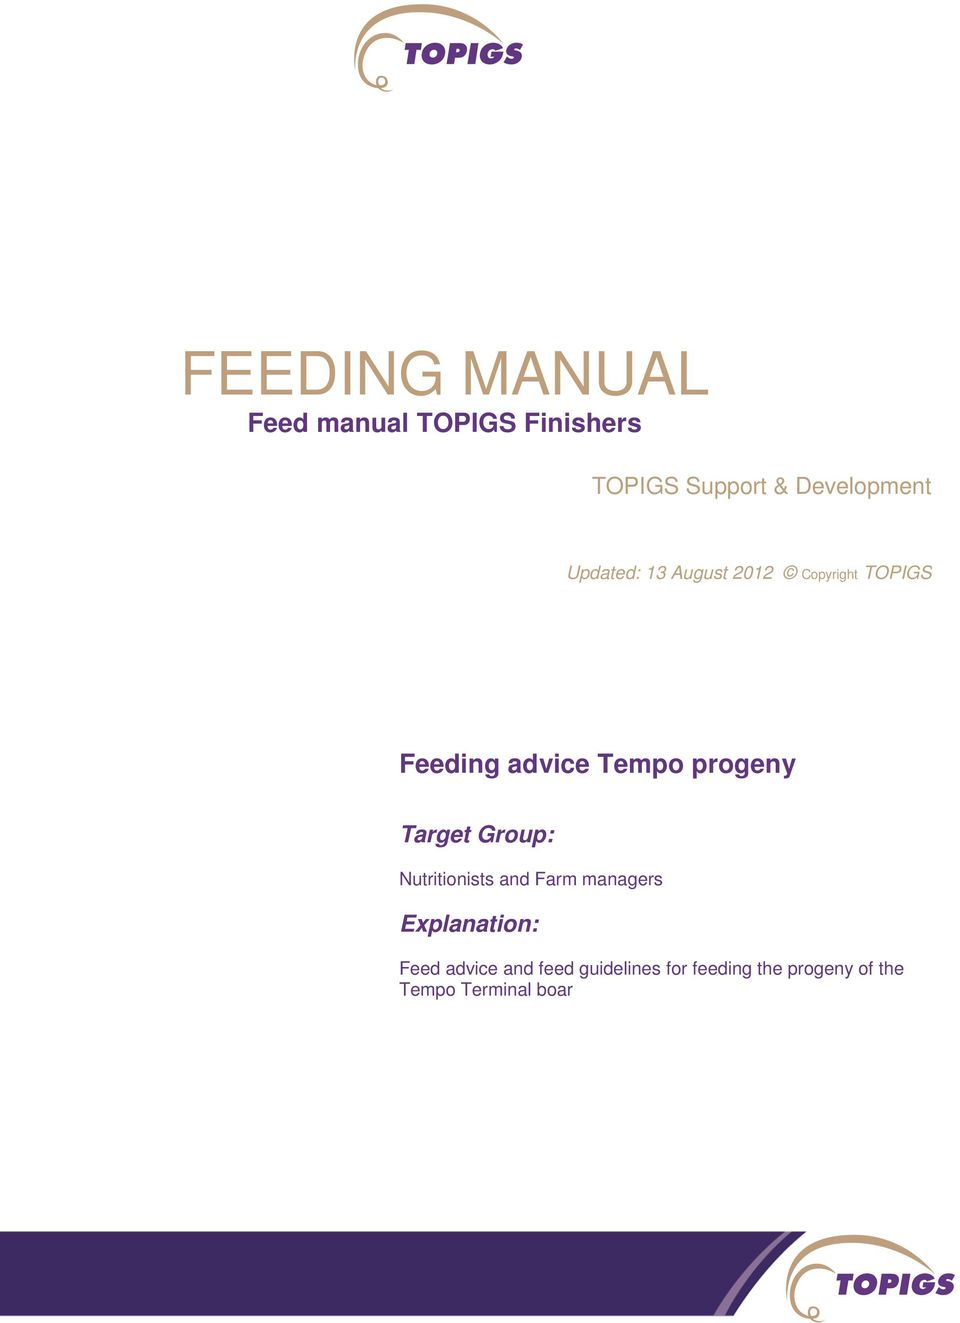 Tempo progeny Target Group: Nutritionists and Farm managers